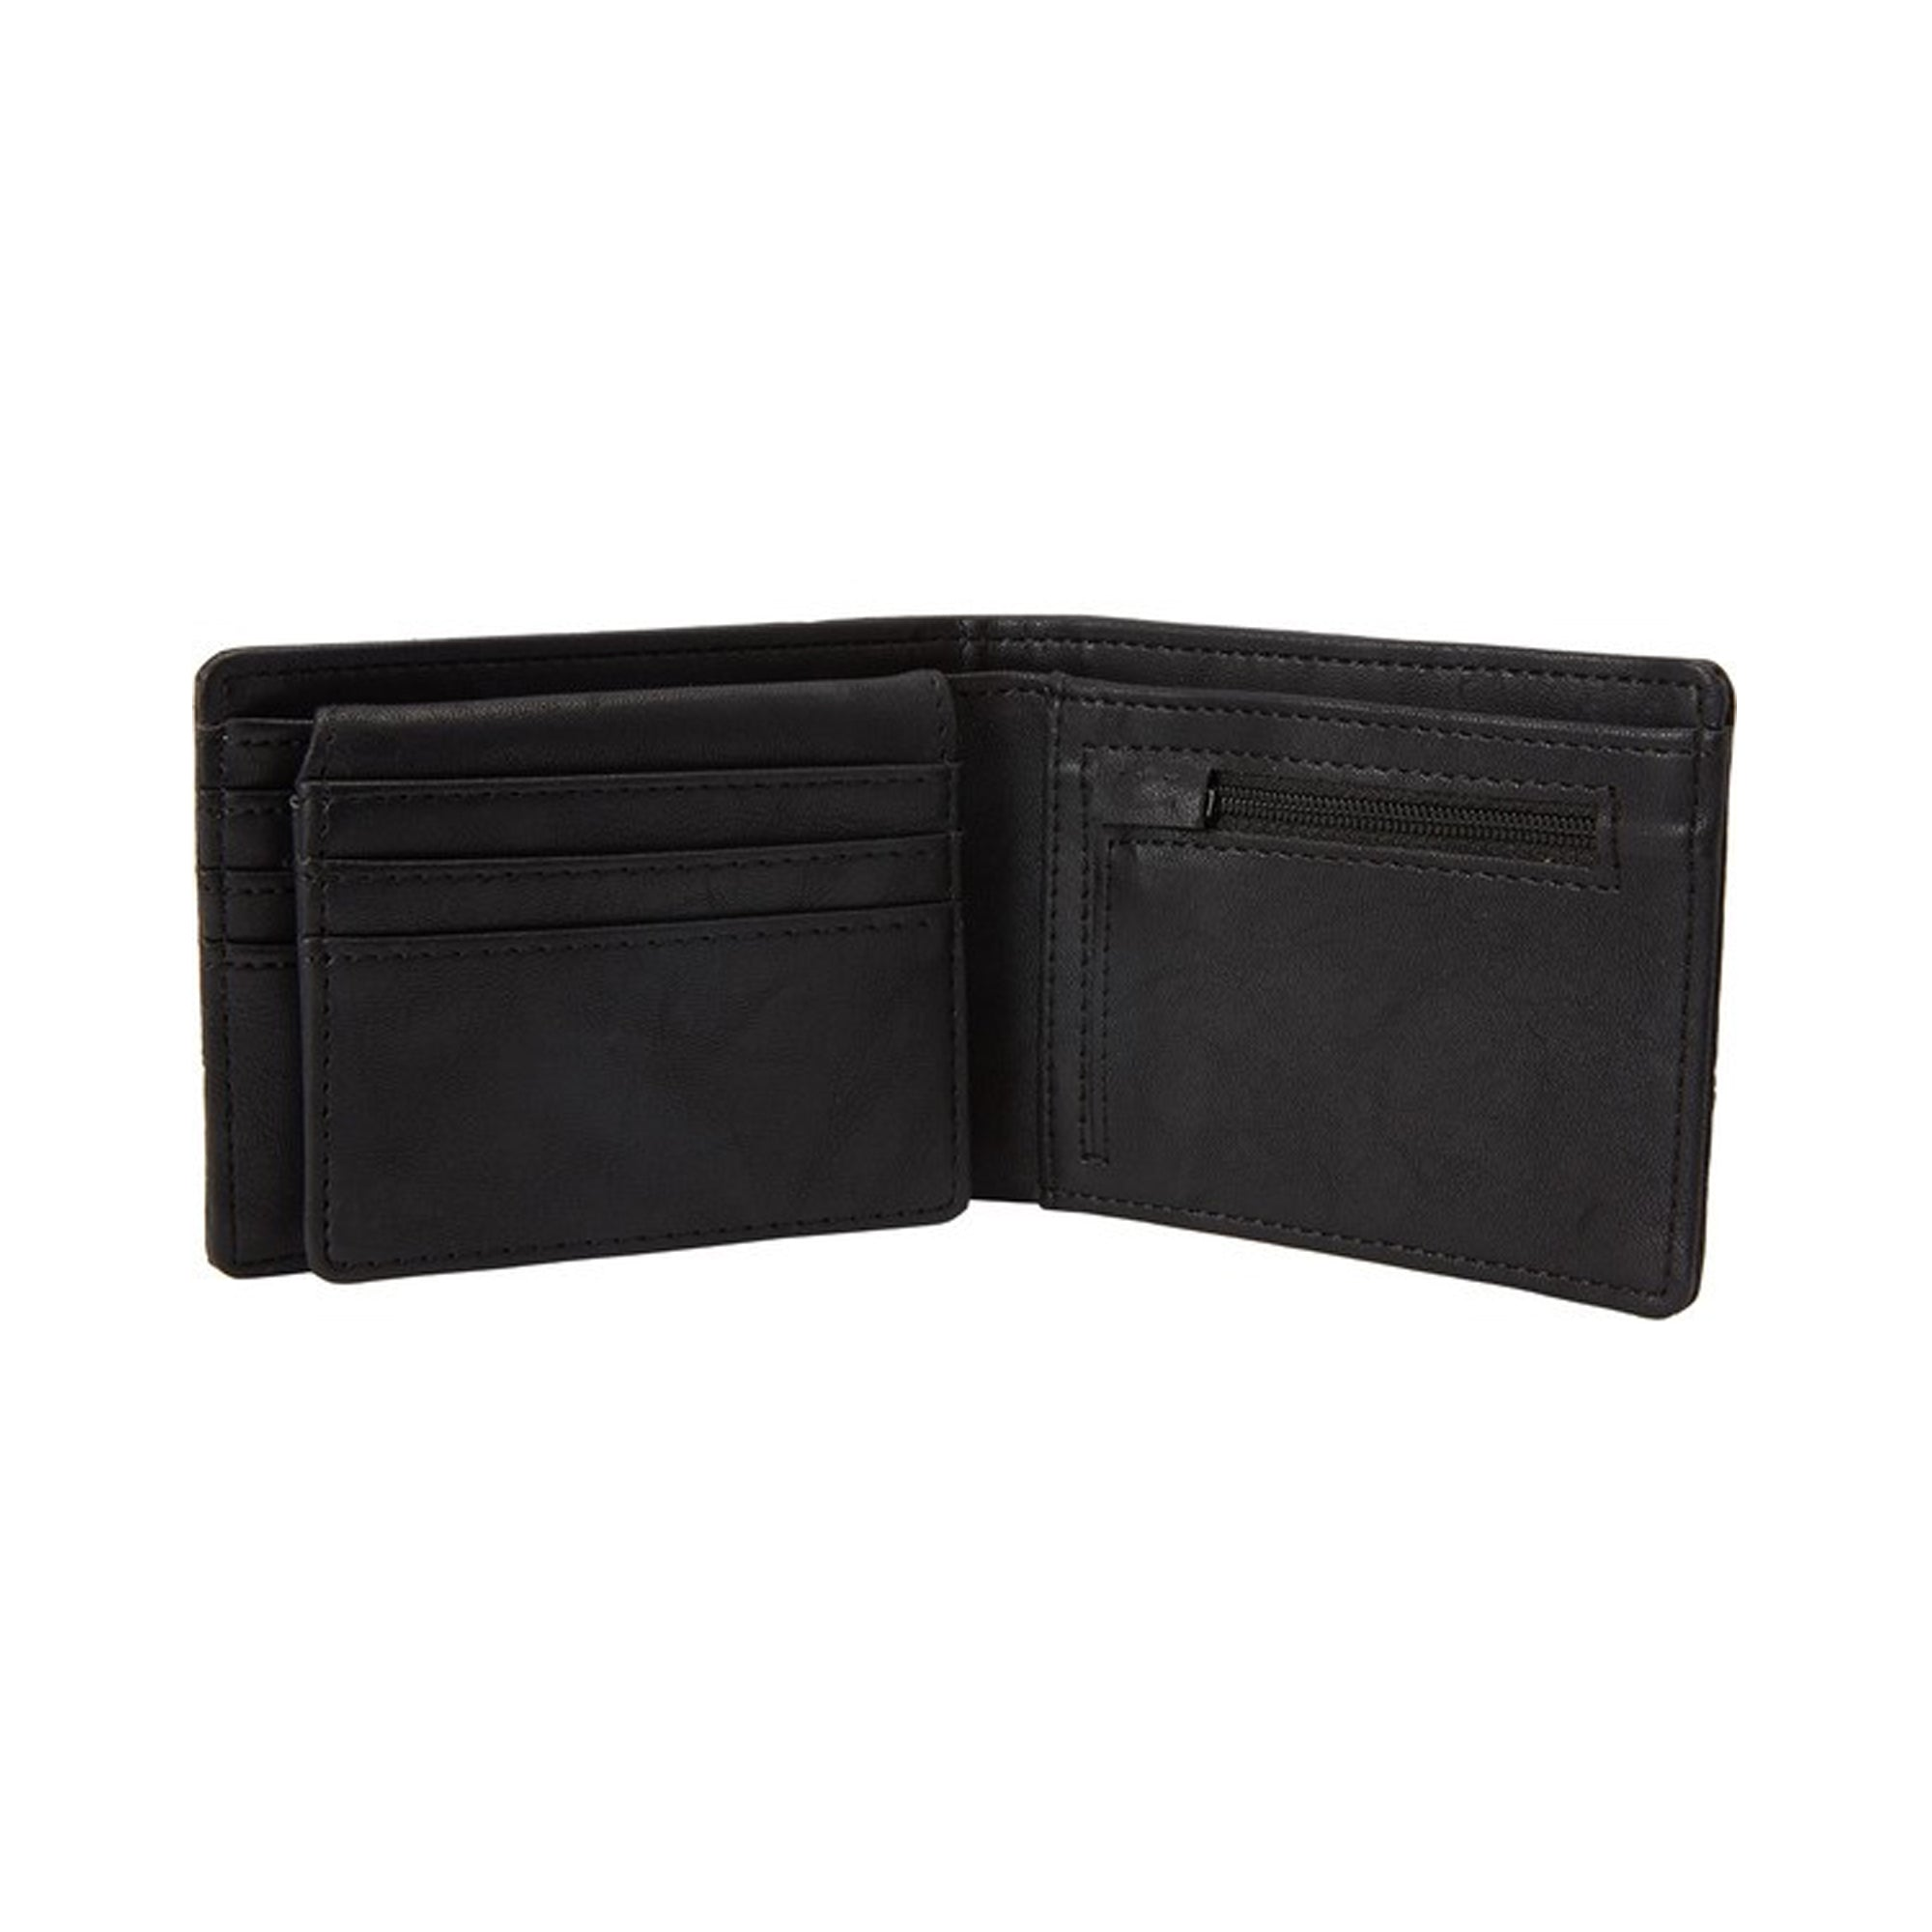 Billabong Dimension Wallet - Black Grain